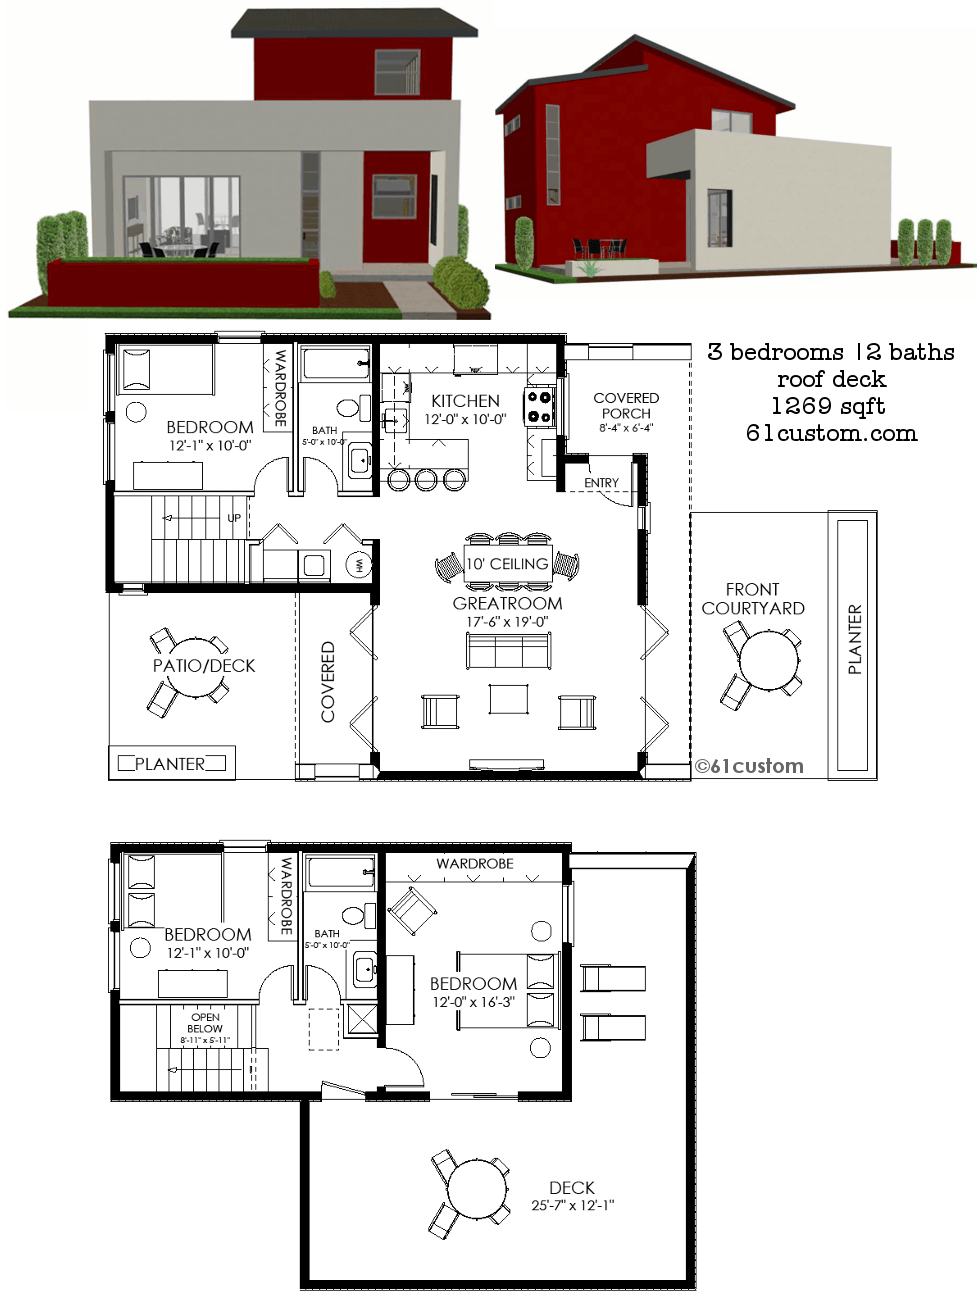 Contemporary small house plan 61custom contemporary Home design house plans